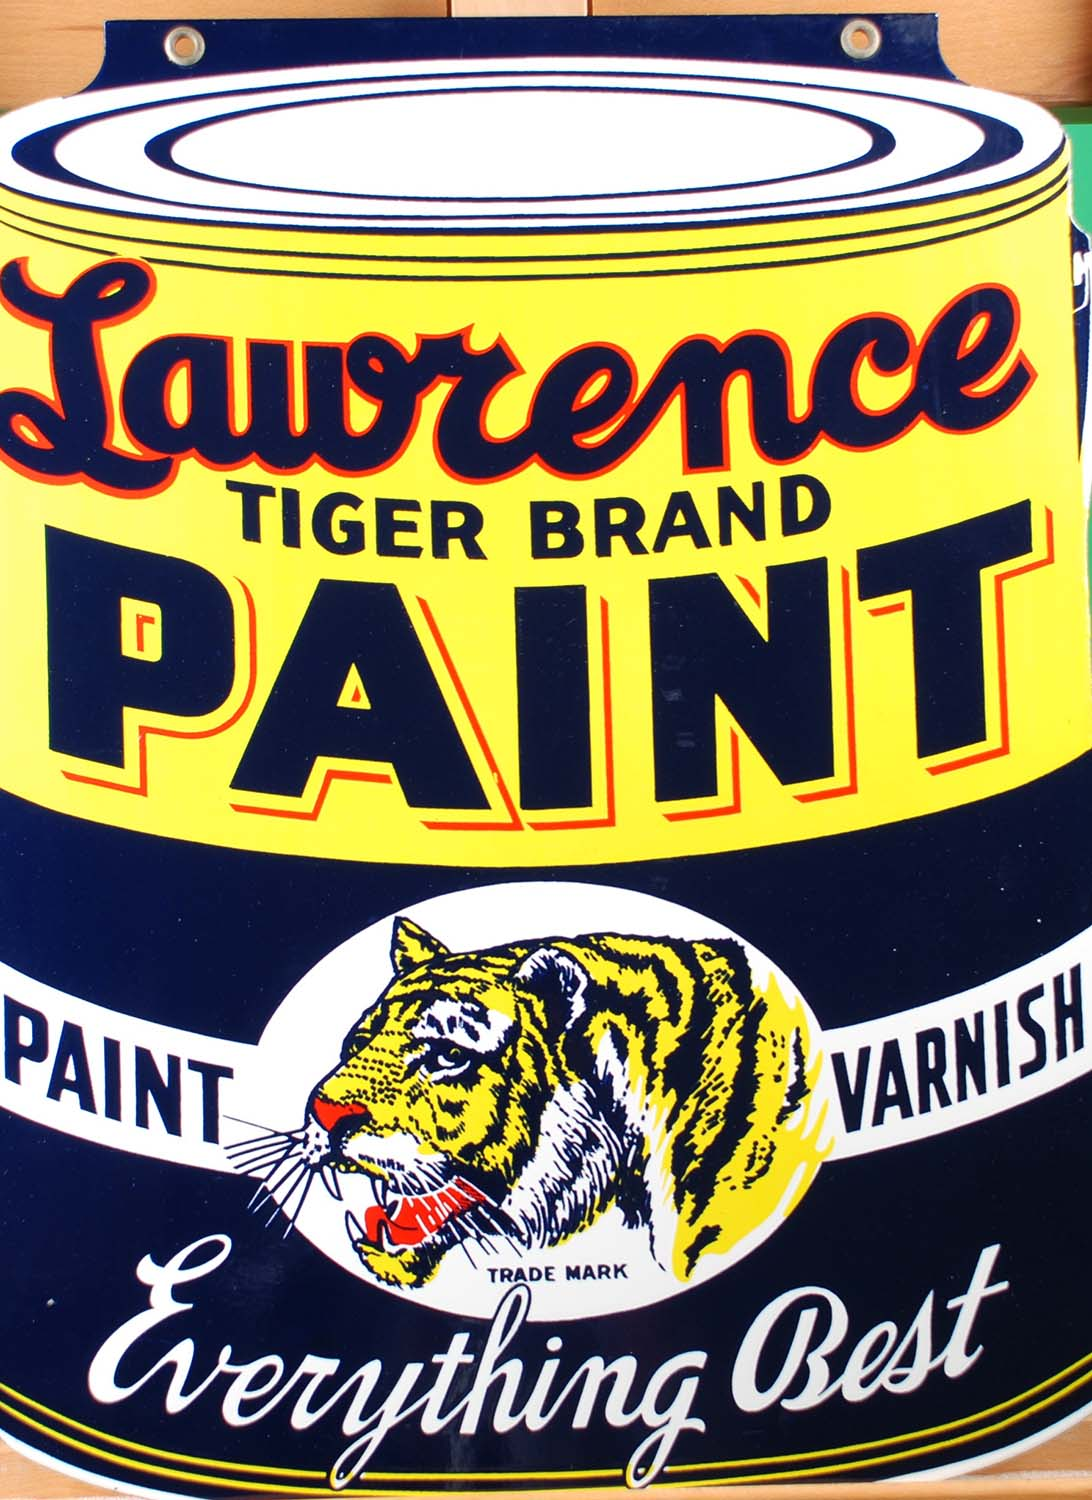 Double-sided enamel sign from the Levine Brothers hardware store that advertises Lawrence Tiger Brand paint. Gift of Levine Brothers, 2012.80.2. Photo by Liz Simpson.